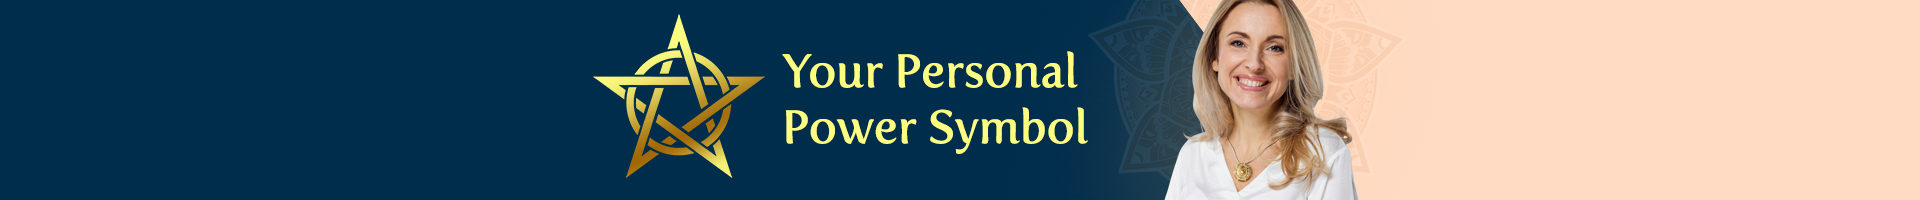 Your-Personal-Power-Symbol